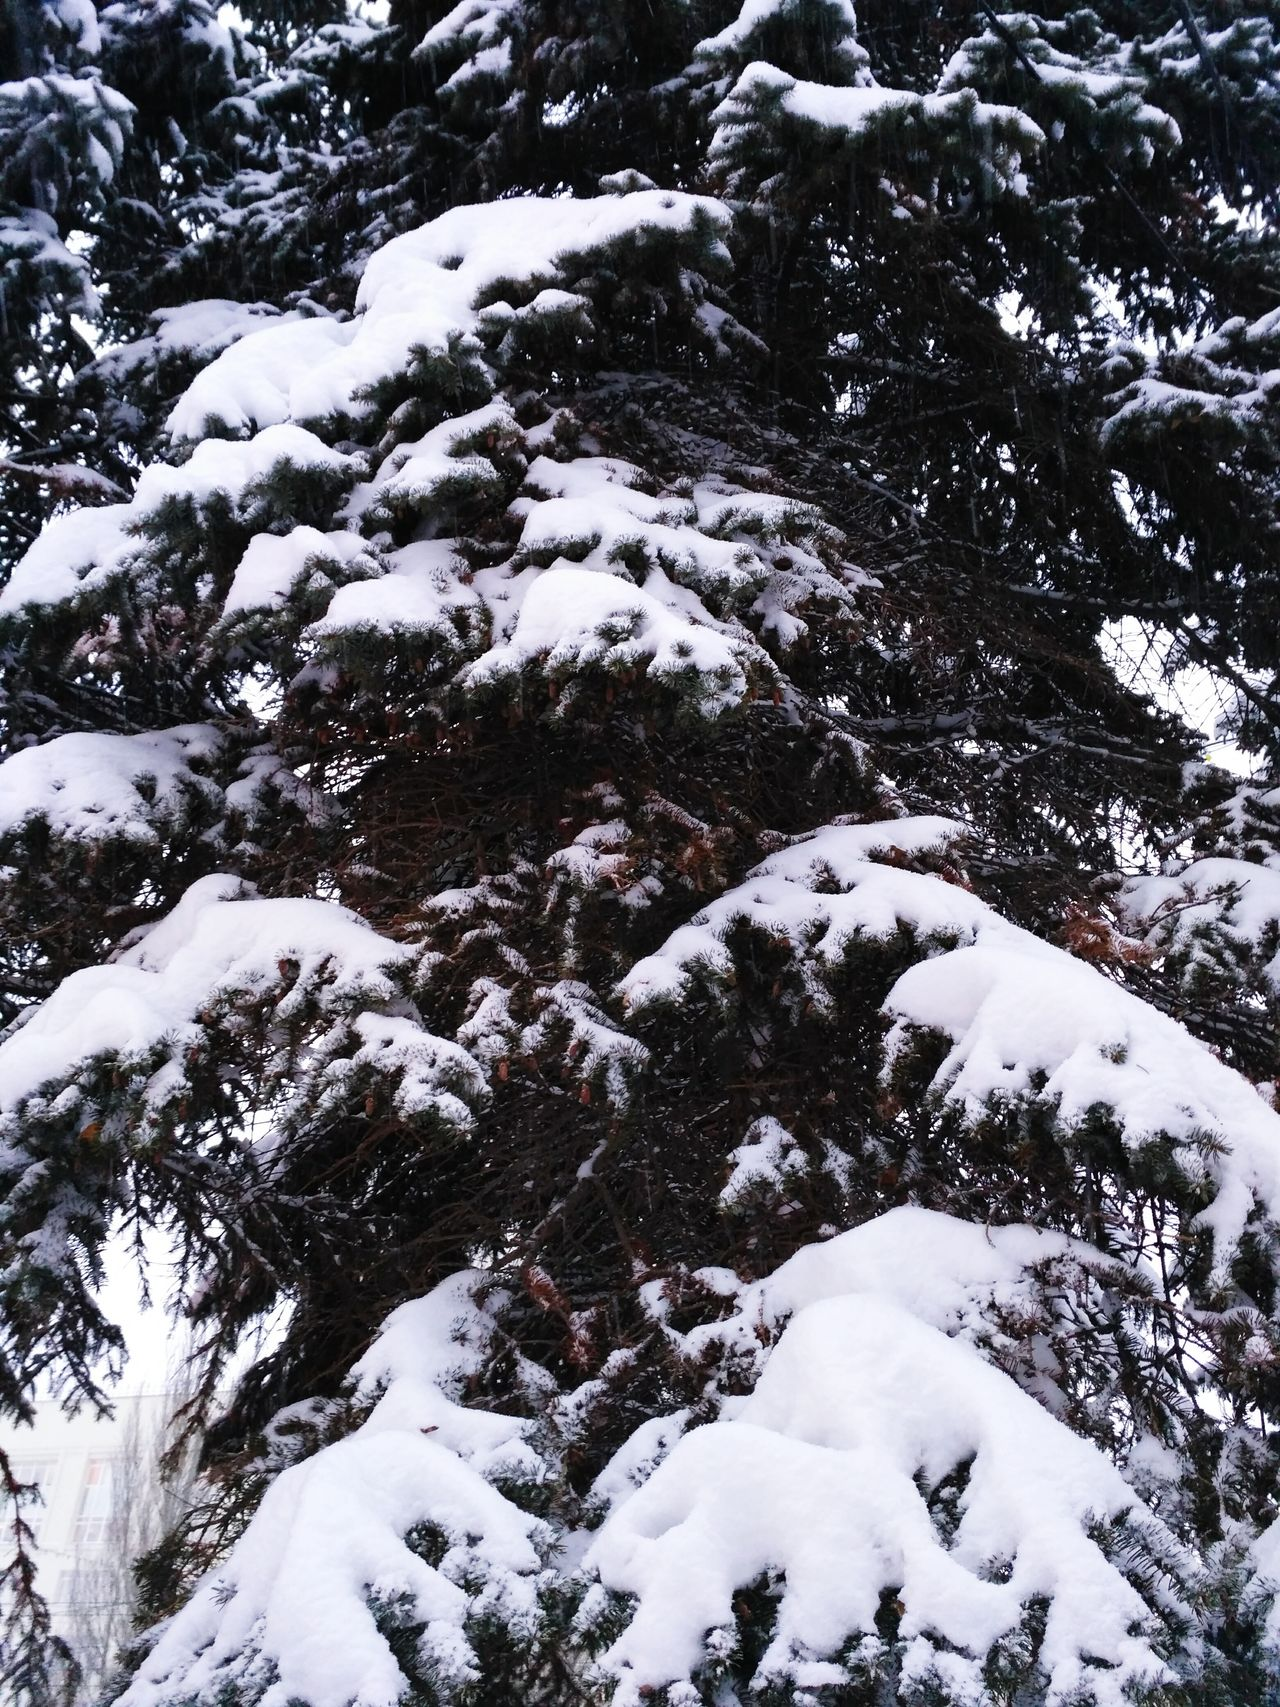 Snow Winter Cold Temperature Nature Beauty In Nature Tree Spruse Fir Branches Snowing Forest Forest Photography Forest Green Branches